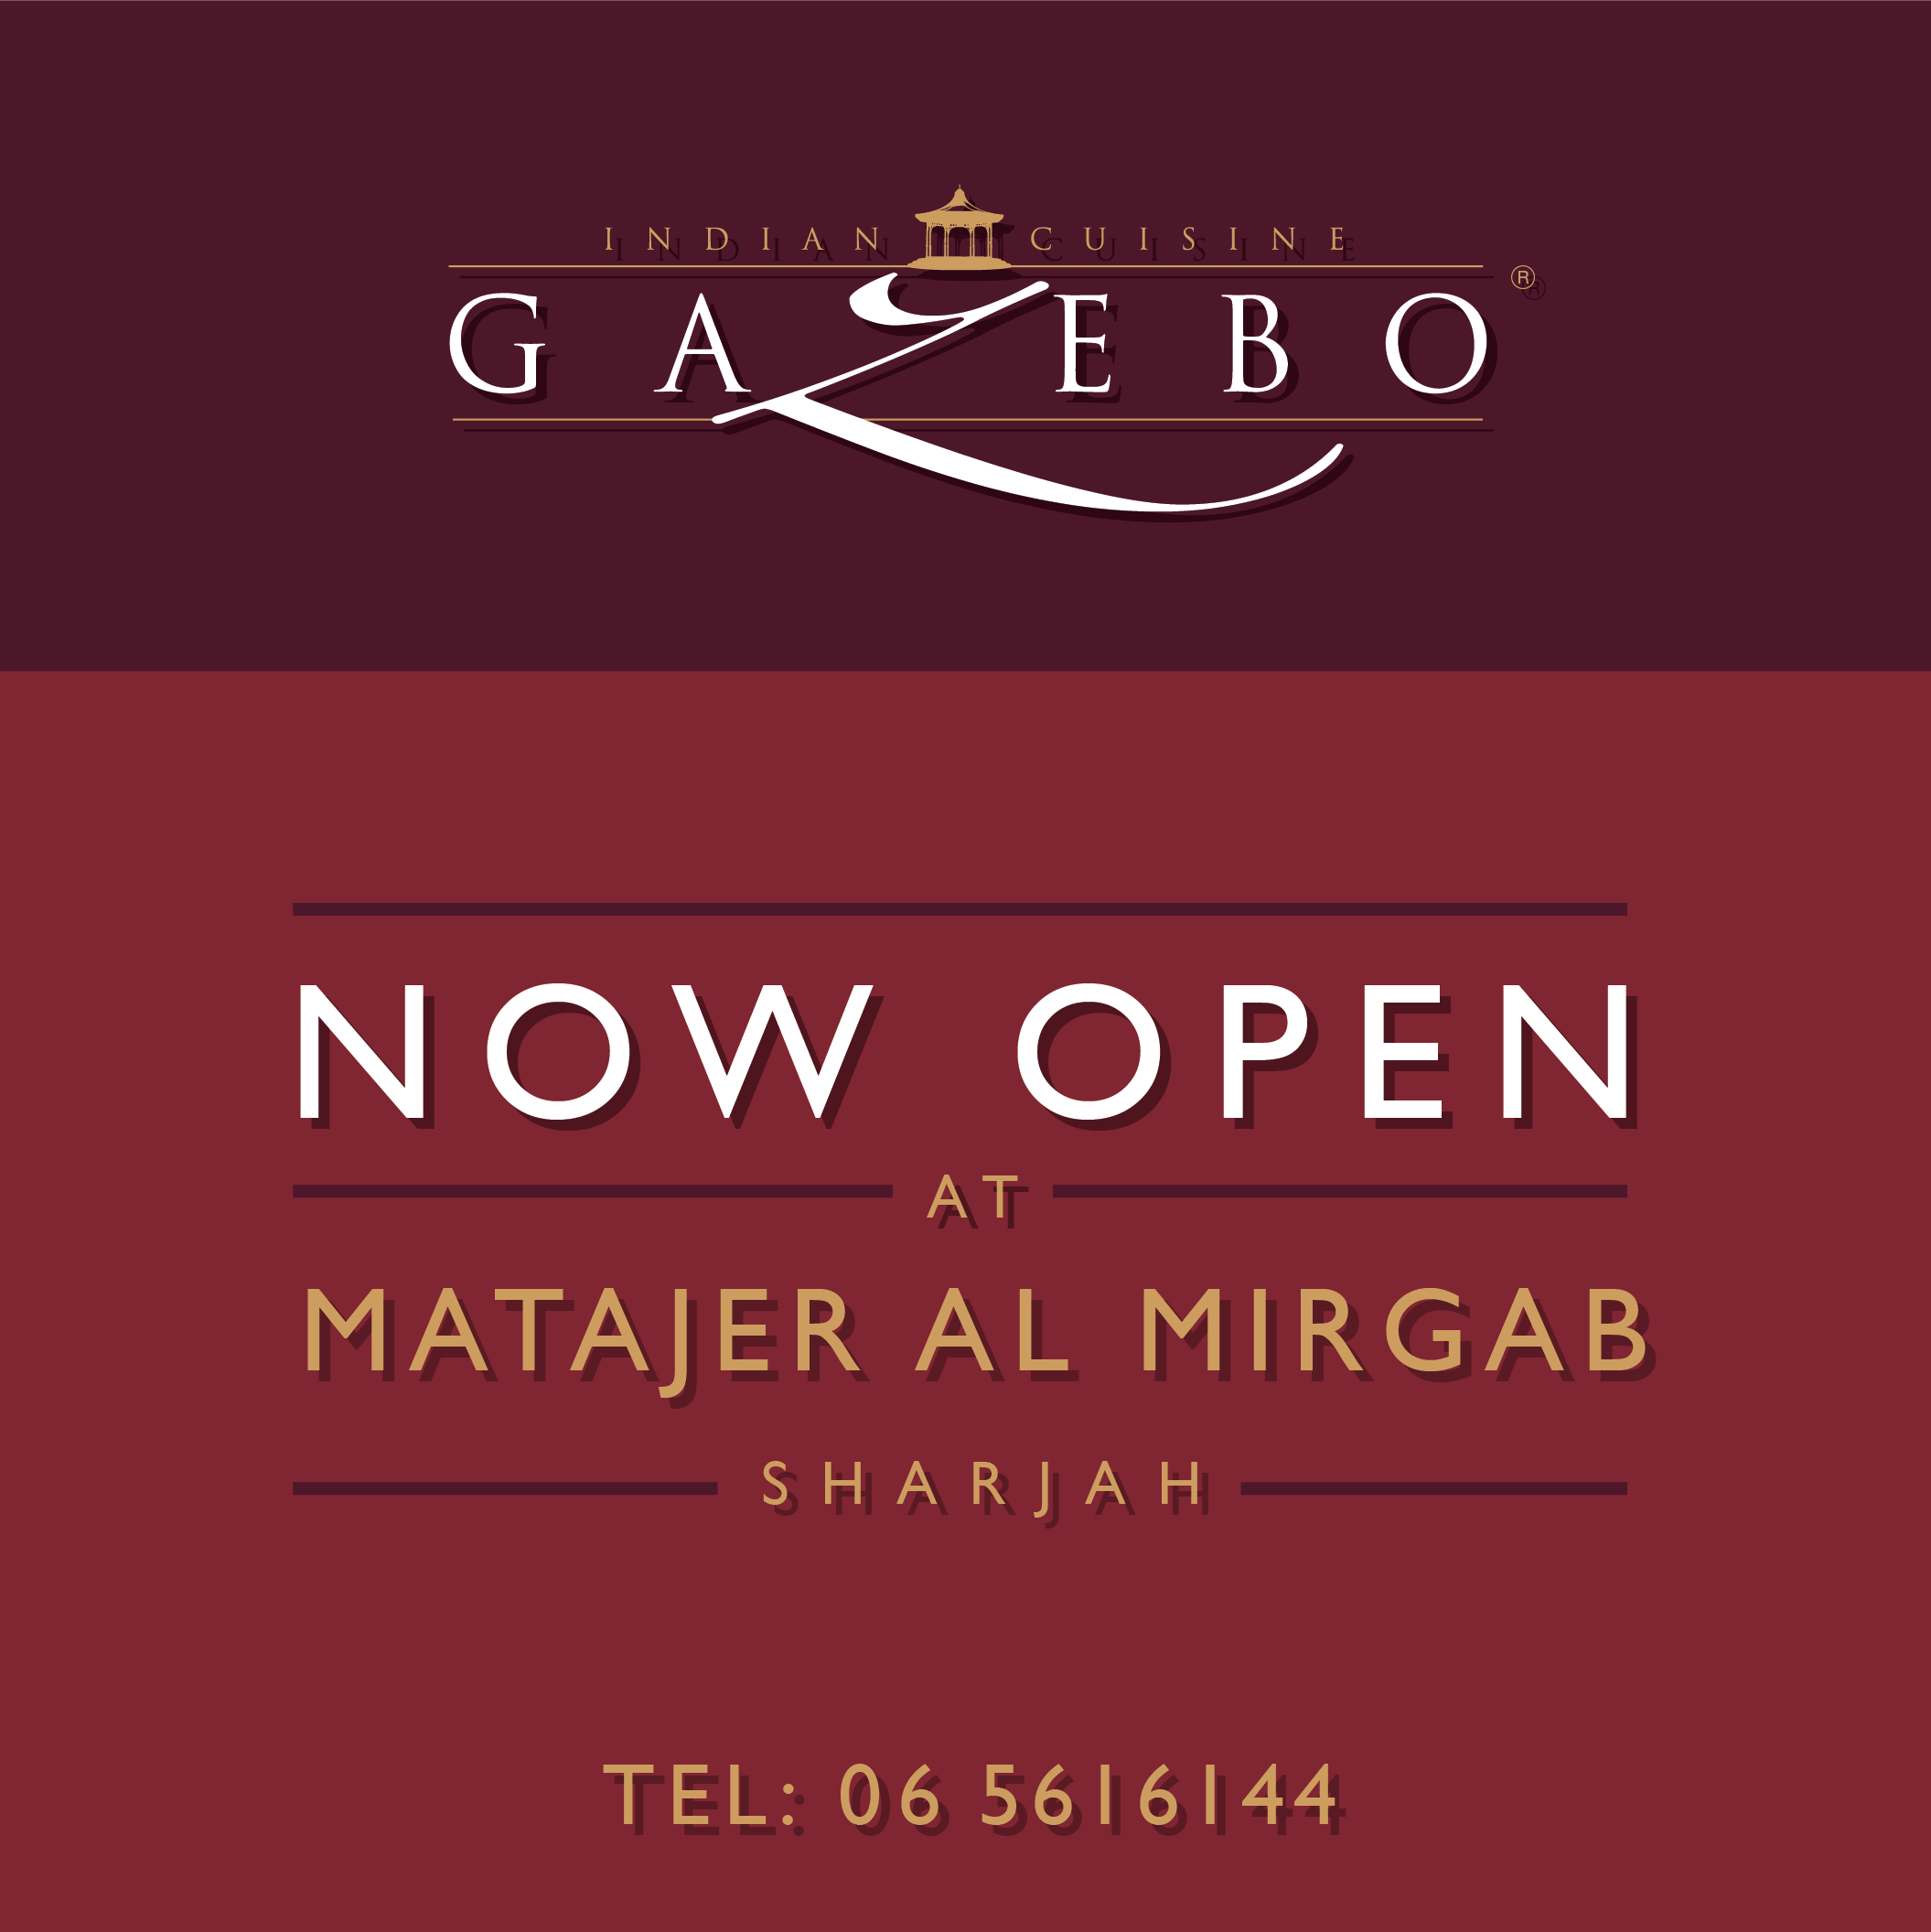 Gazebo Now open at Matager al mirgab